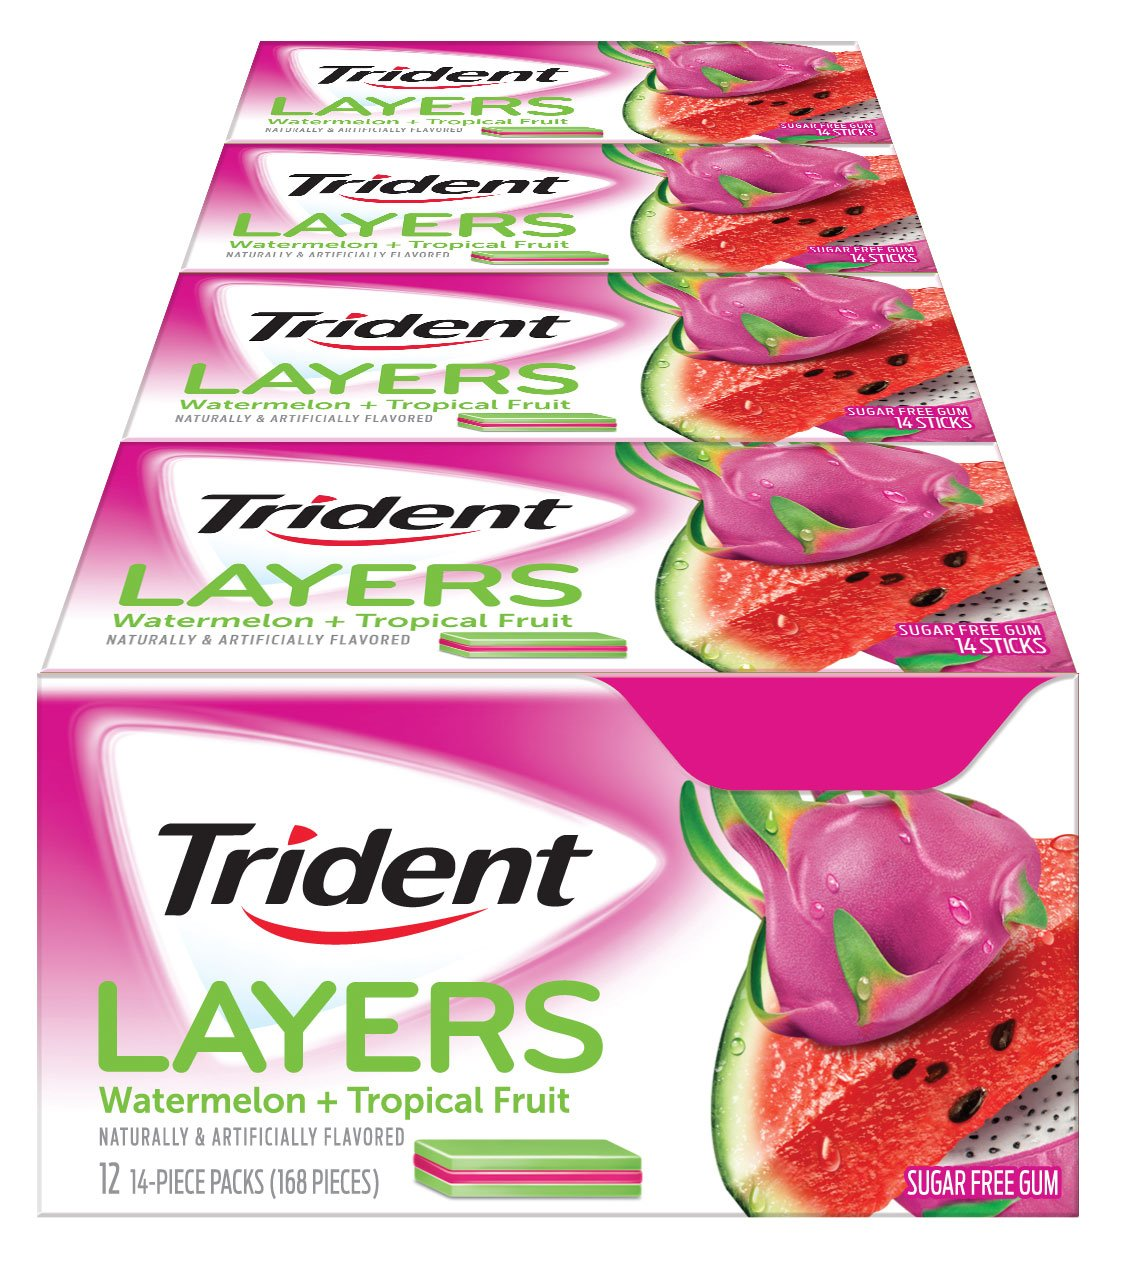 Trident Layers Sugar Free Gum (Watermelon & Tropical Fruit, 14-Piece, 12-Pack) by Trident